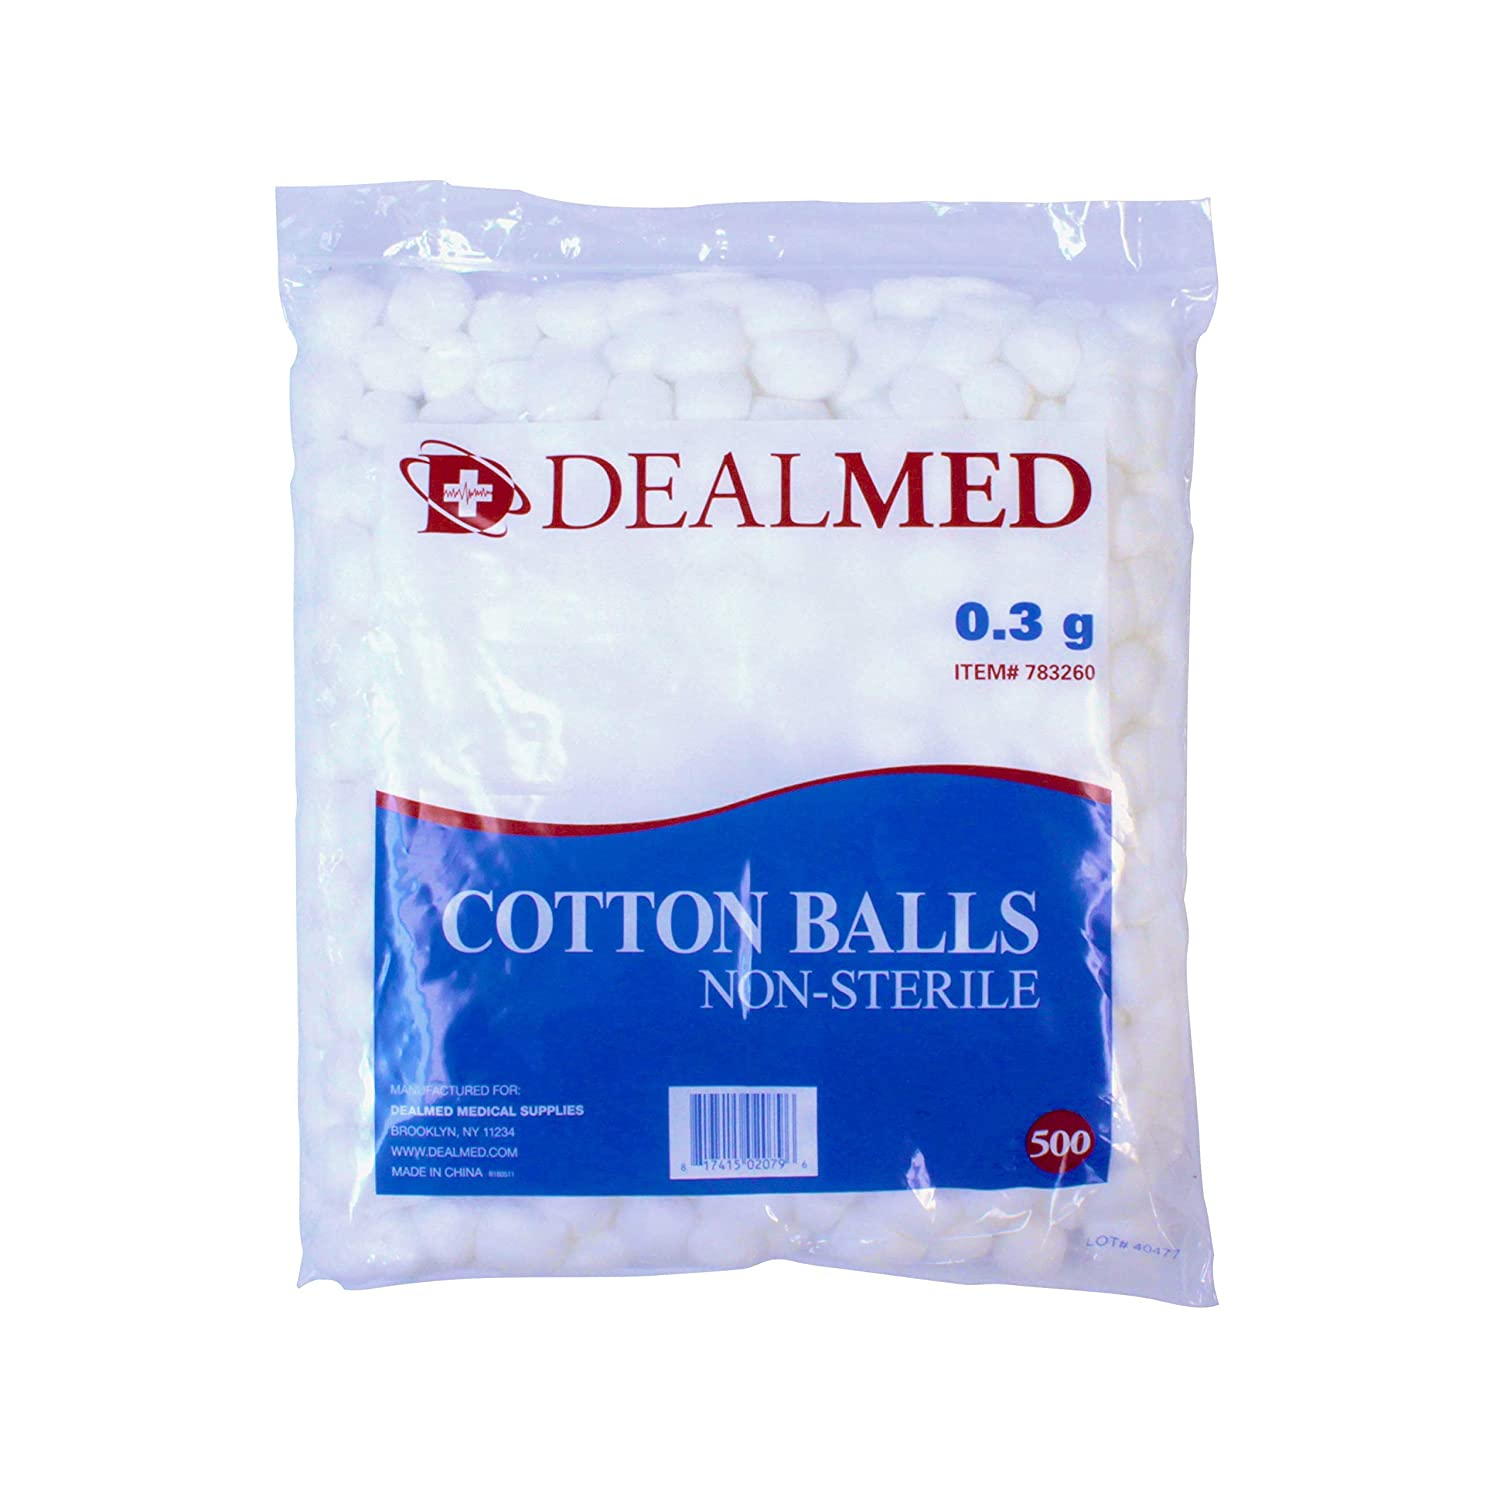 Cotton Balls Soft Non-Sterile 0.3 Gram Conveniently Packed in Zip-Locked Bag 1000 per Bag Dealmed